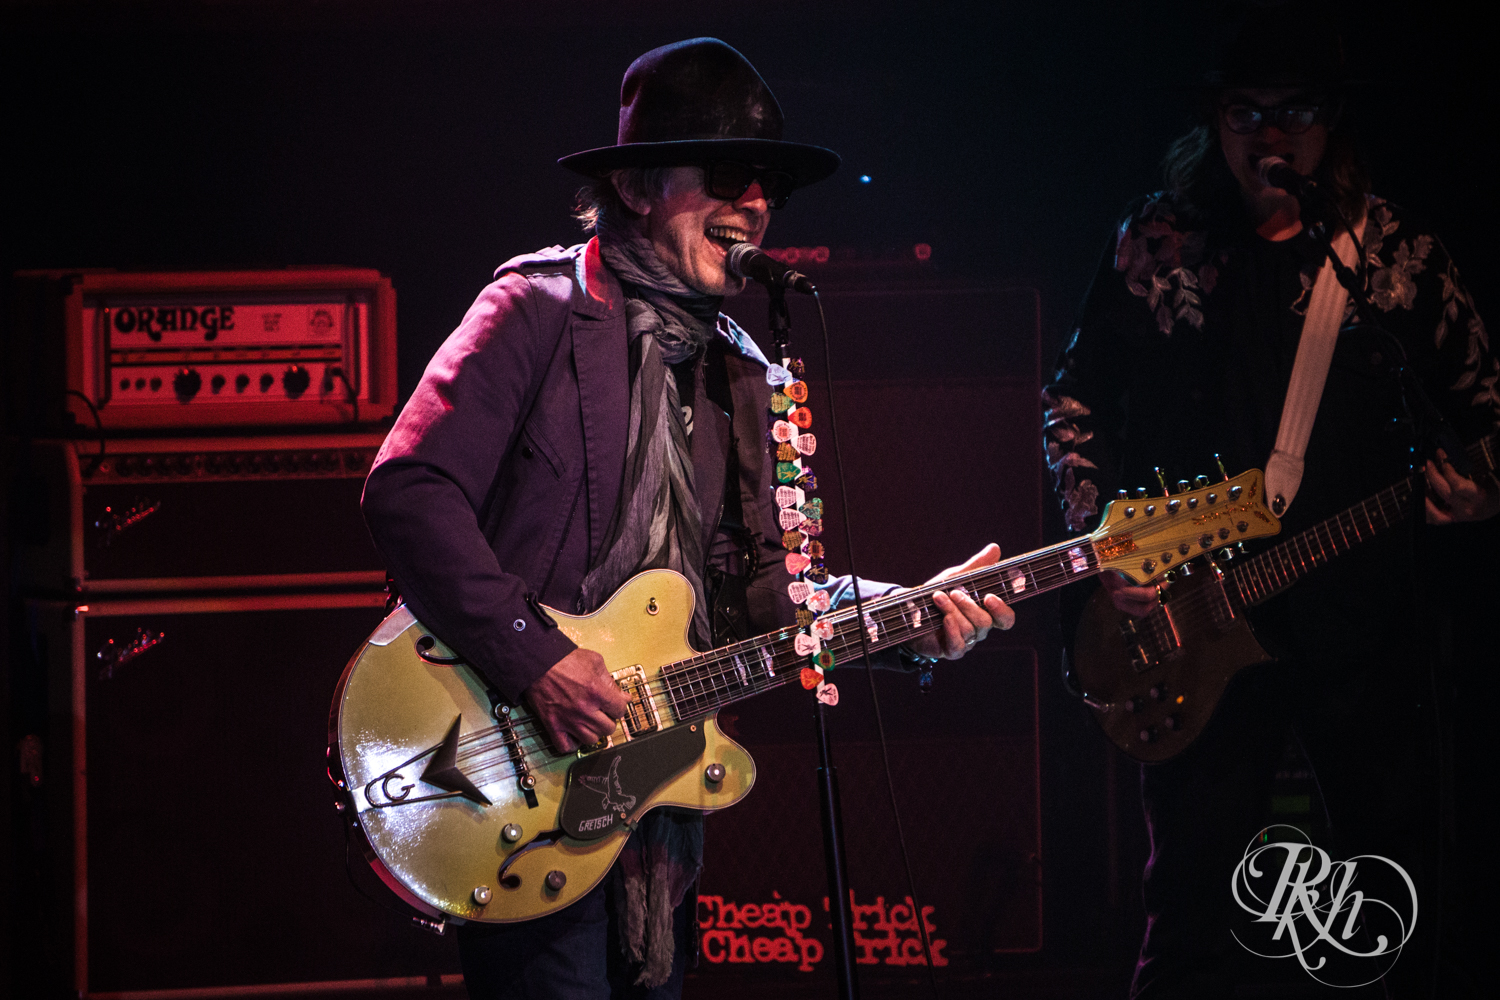 Cheap Trick - Mystic Lake Casino - RKH Images  (5 of 15).jpg